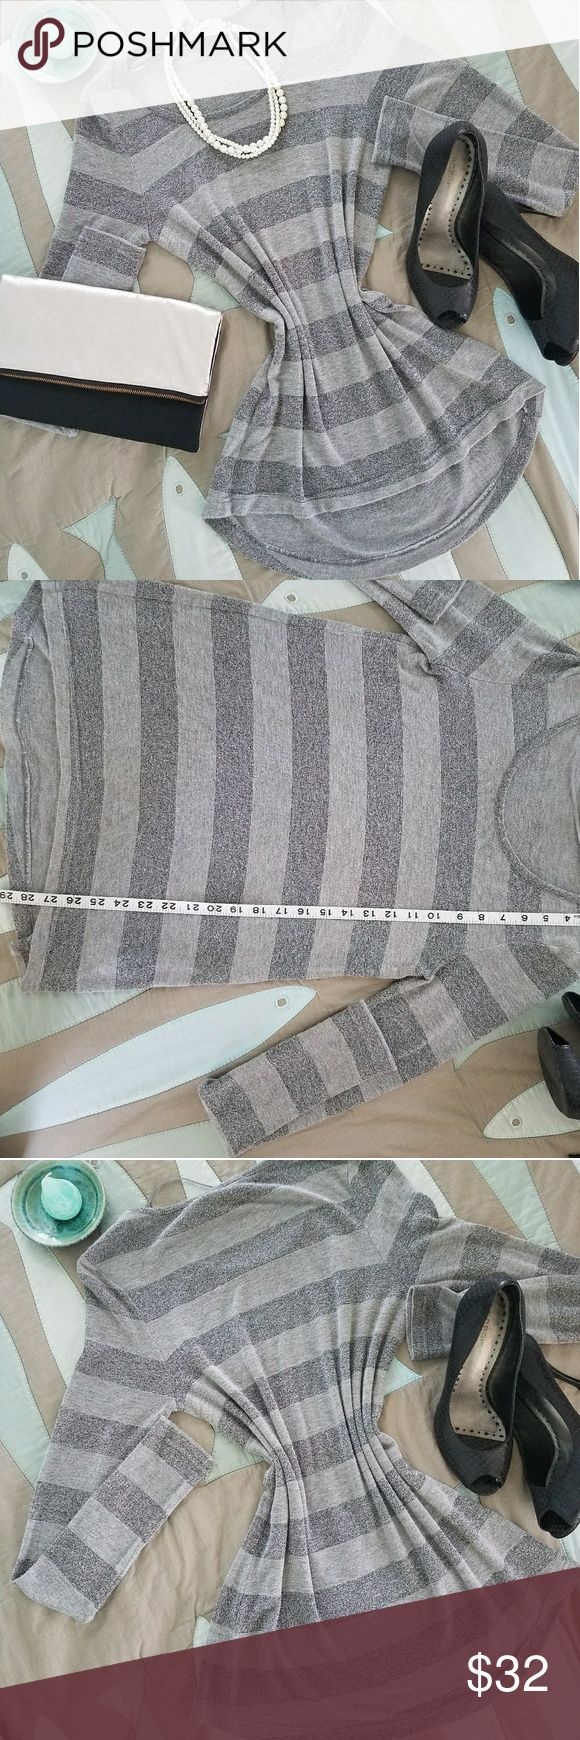 Vince Camuto sexy striped silver & grey sweater This gorgeous Vince Camuto sexy stripe silver and grey sweater is in pre-owned but excellent condition, made of spandex rayon and metallics it's super soft and has the perfect amount of stretch. Sweater is size small, please see photo measurements. Sweater can be dressed up or down, perfect for any occasion!  Sweater is slightly shorter in the front longer in the back, for a bit of high low effect. Vince Camuto Sweaters Crew & Scoop Necks